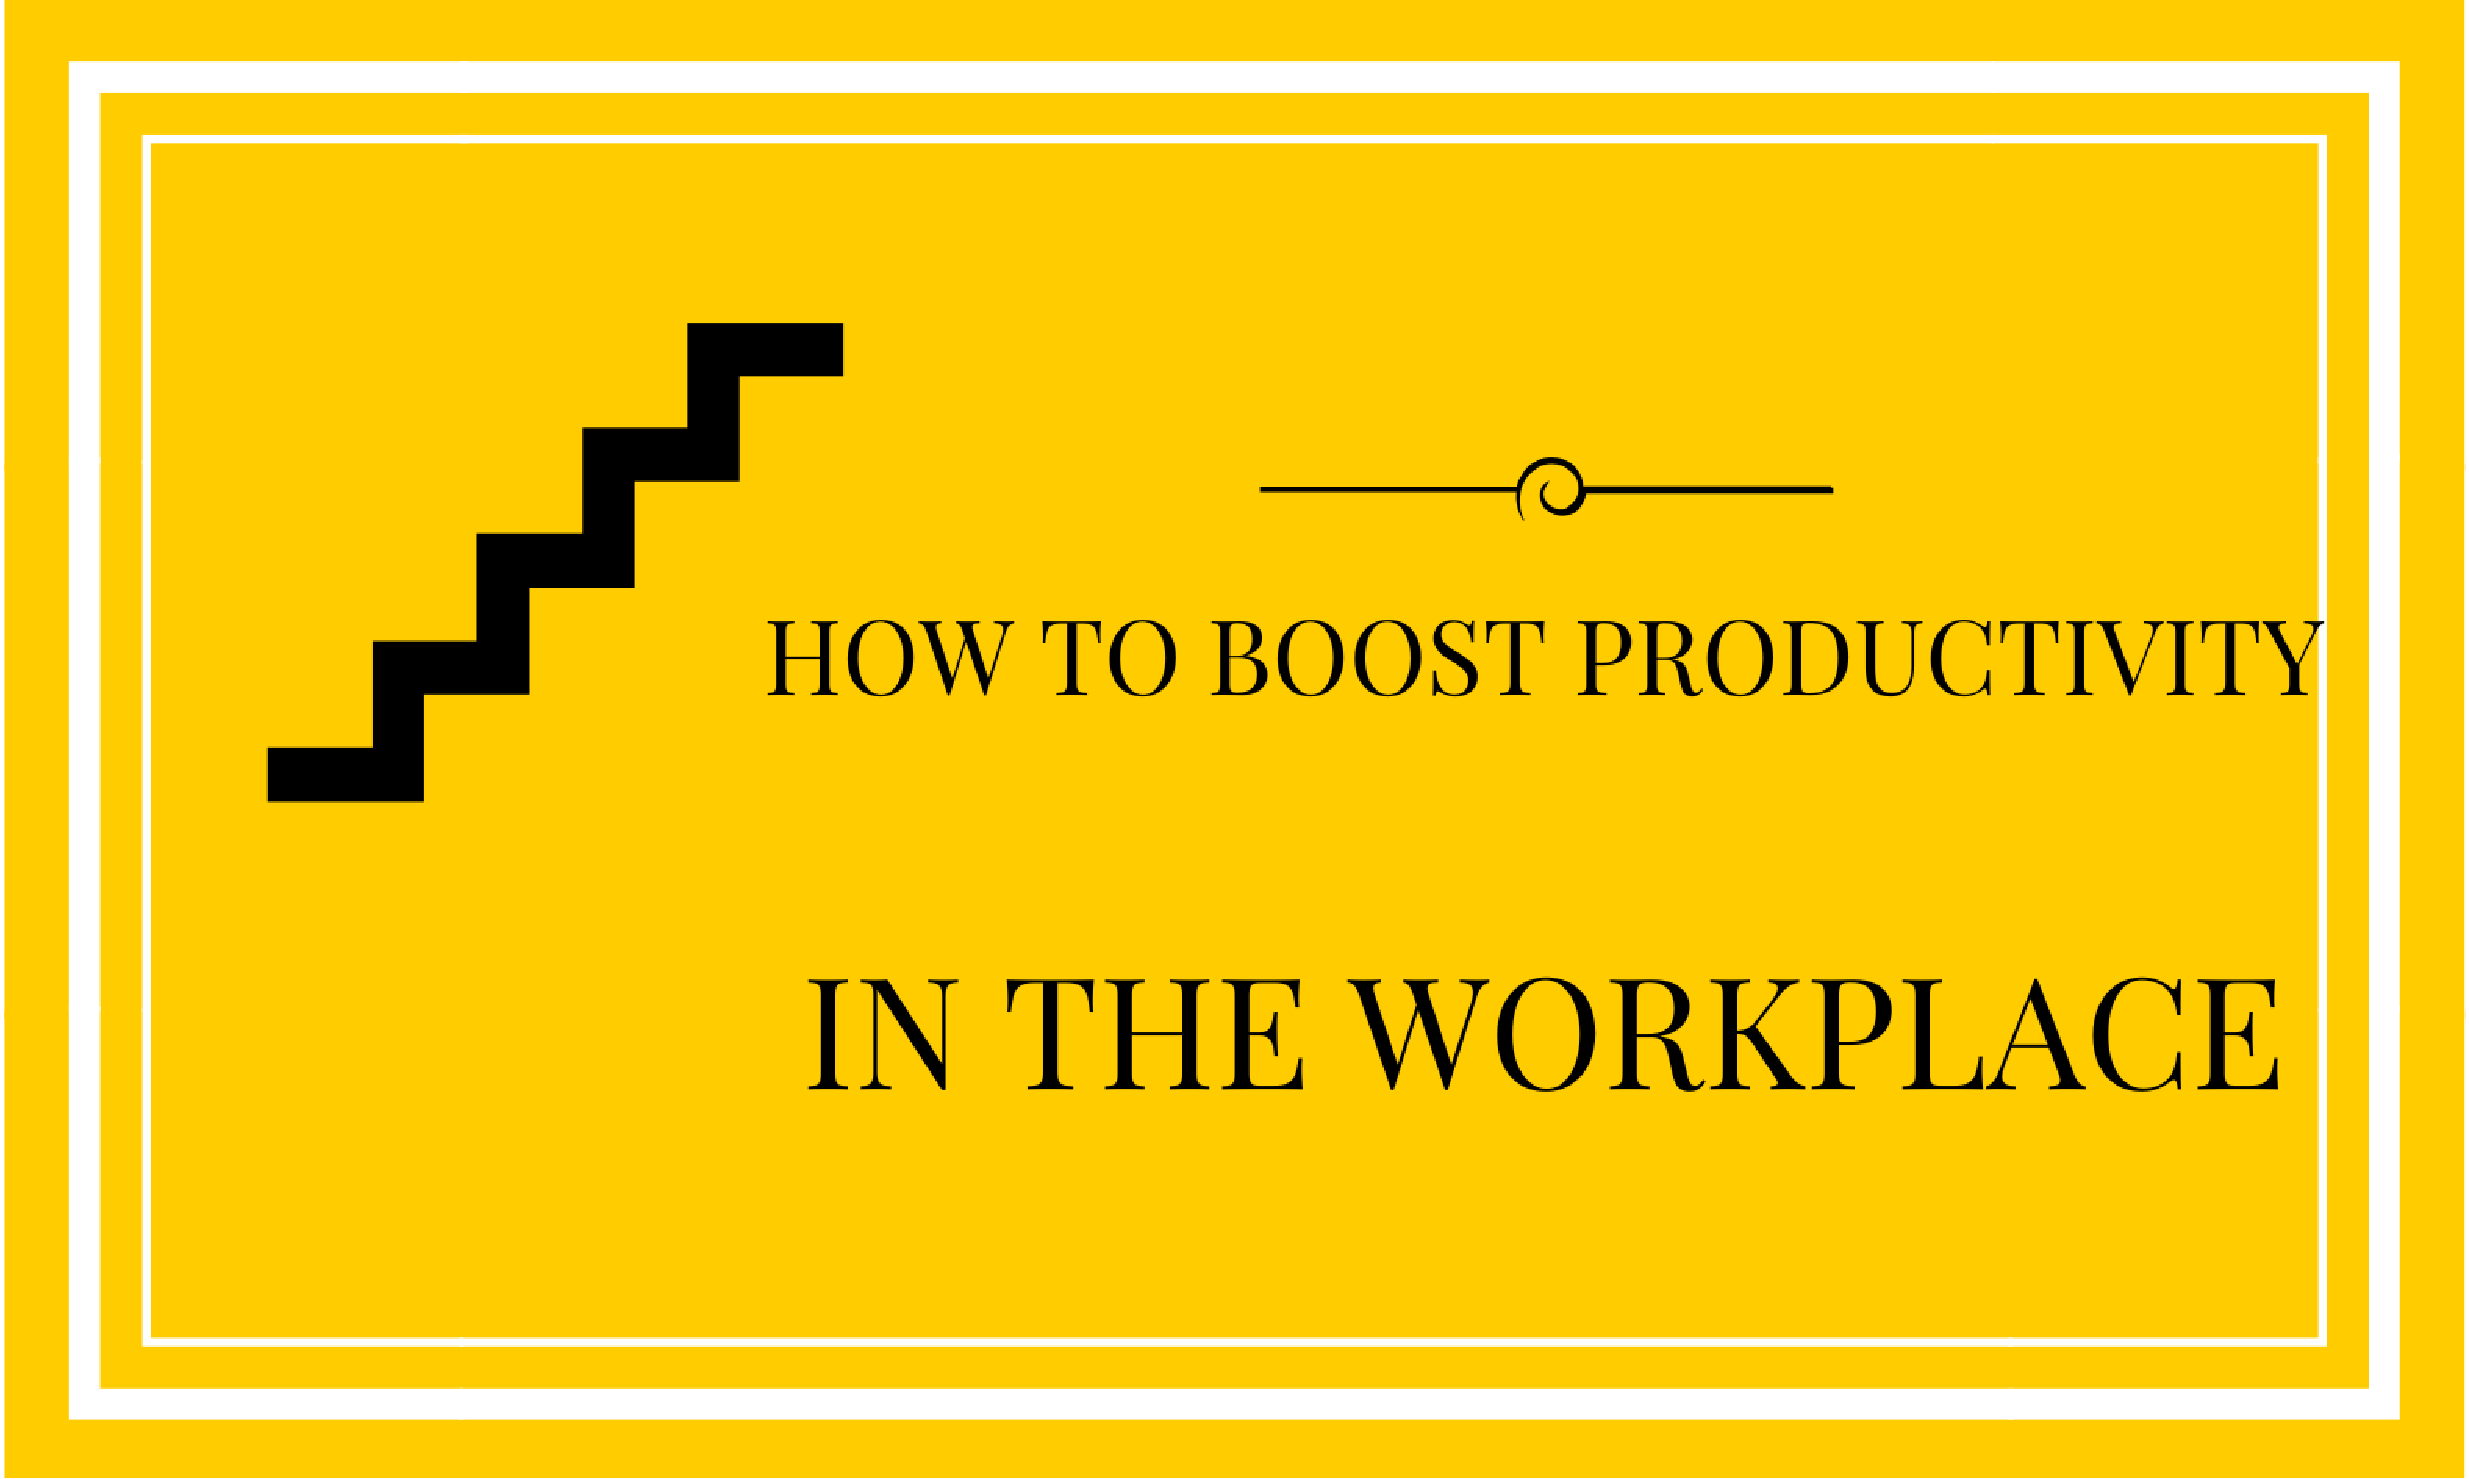 How to boost productivity in the workplace